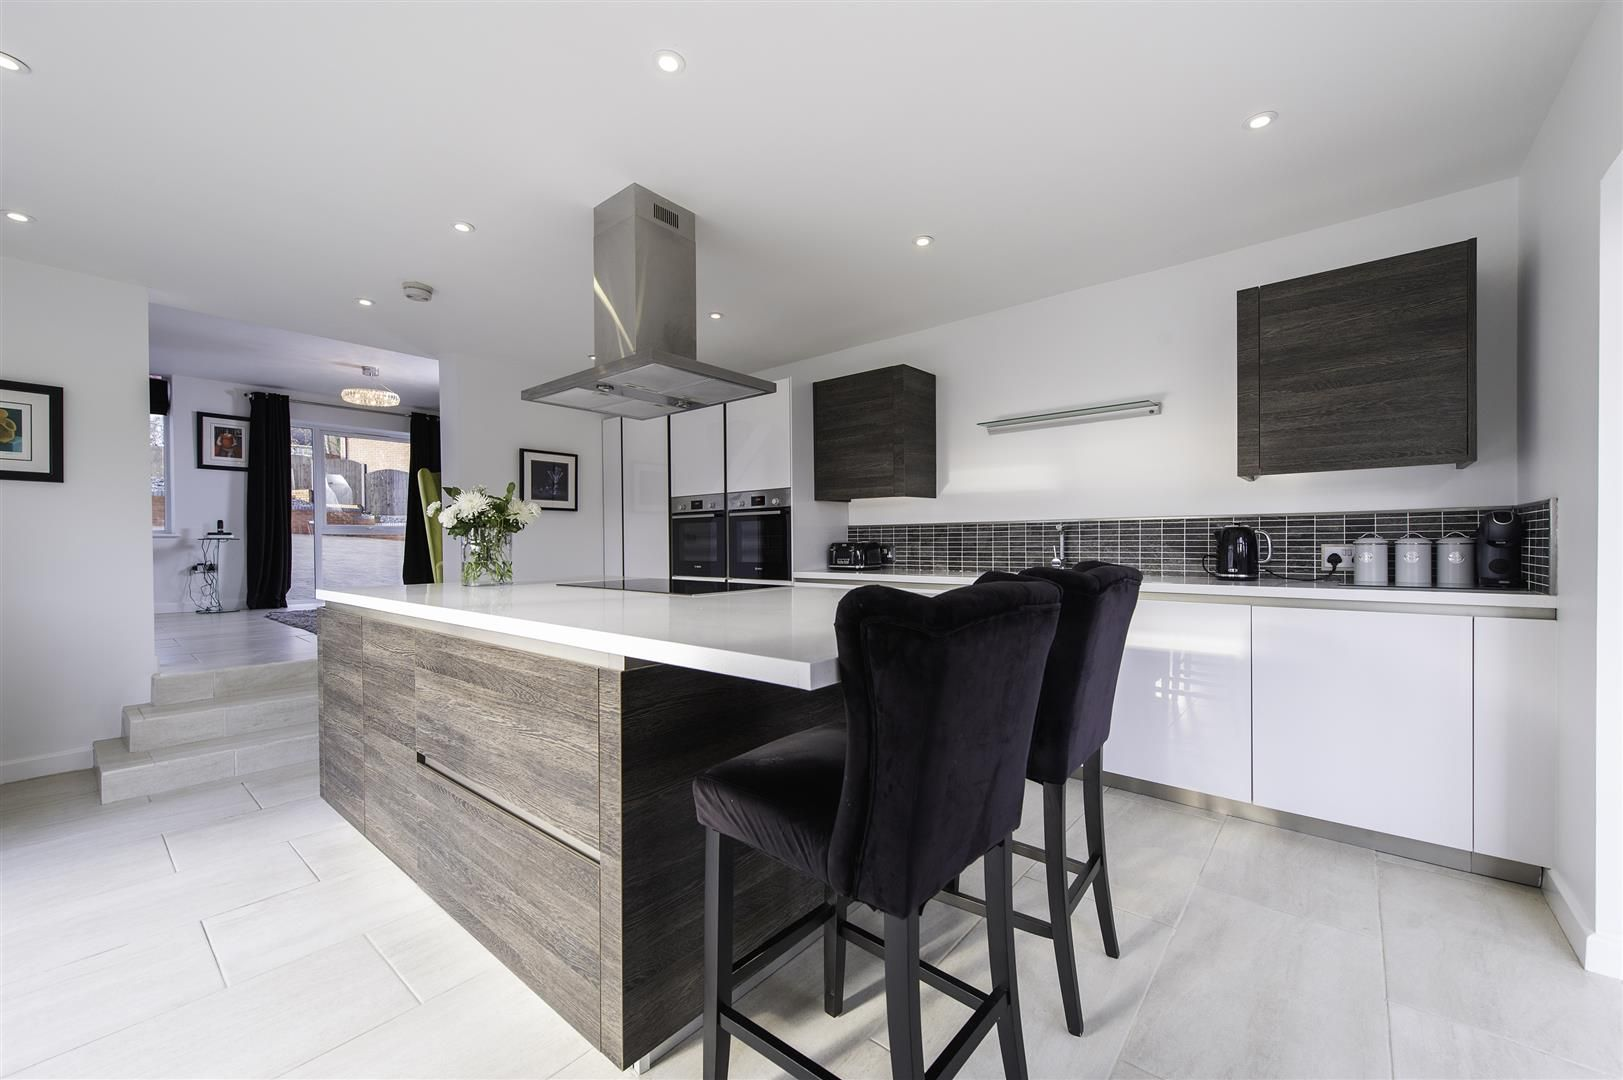 4 bed detached for sale in Stourton 6